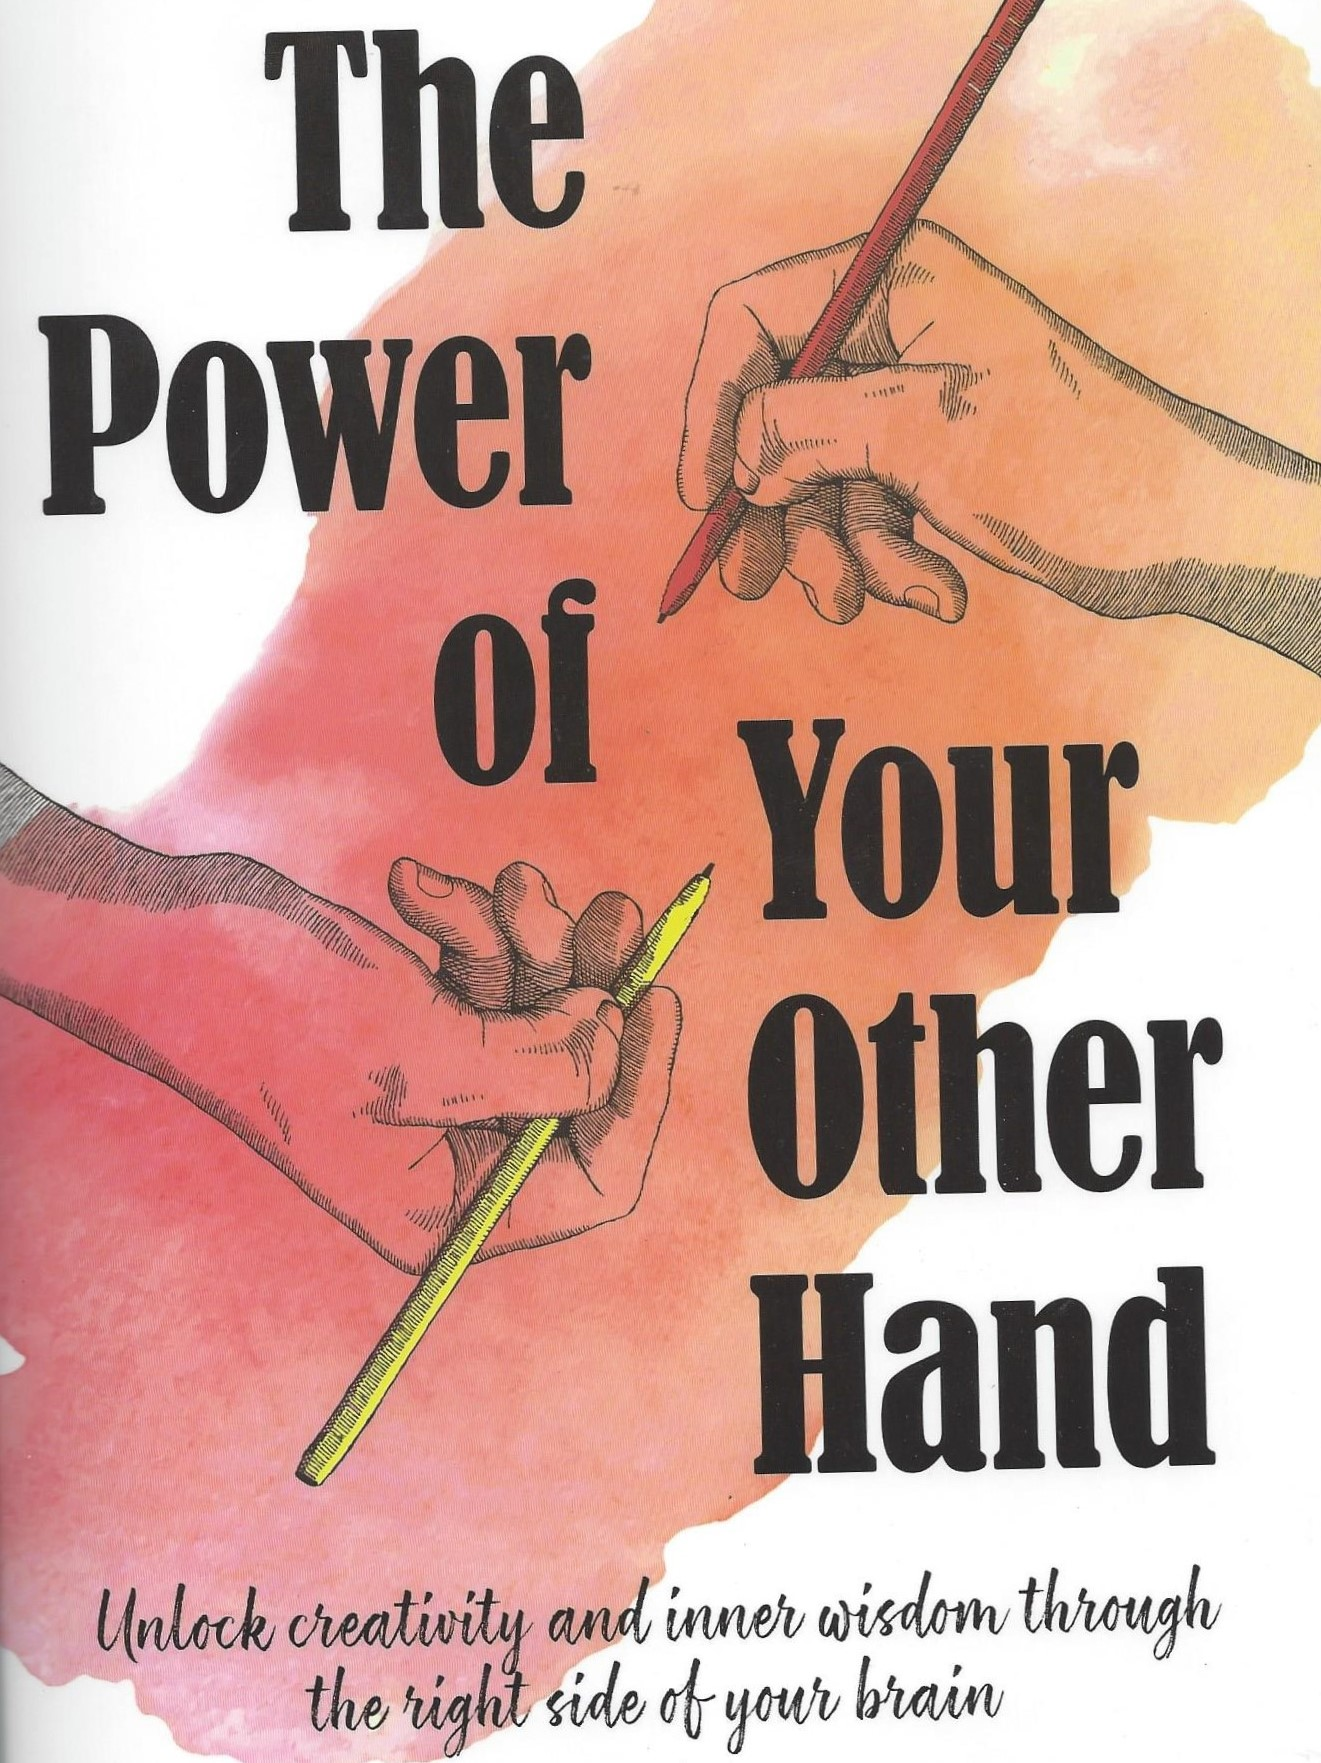 The Power of Your Other Hand1.jpg